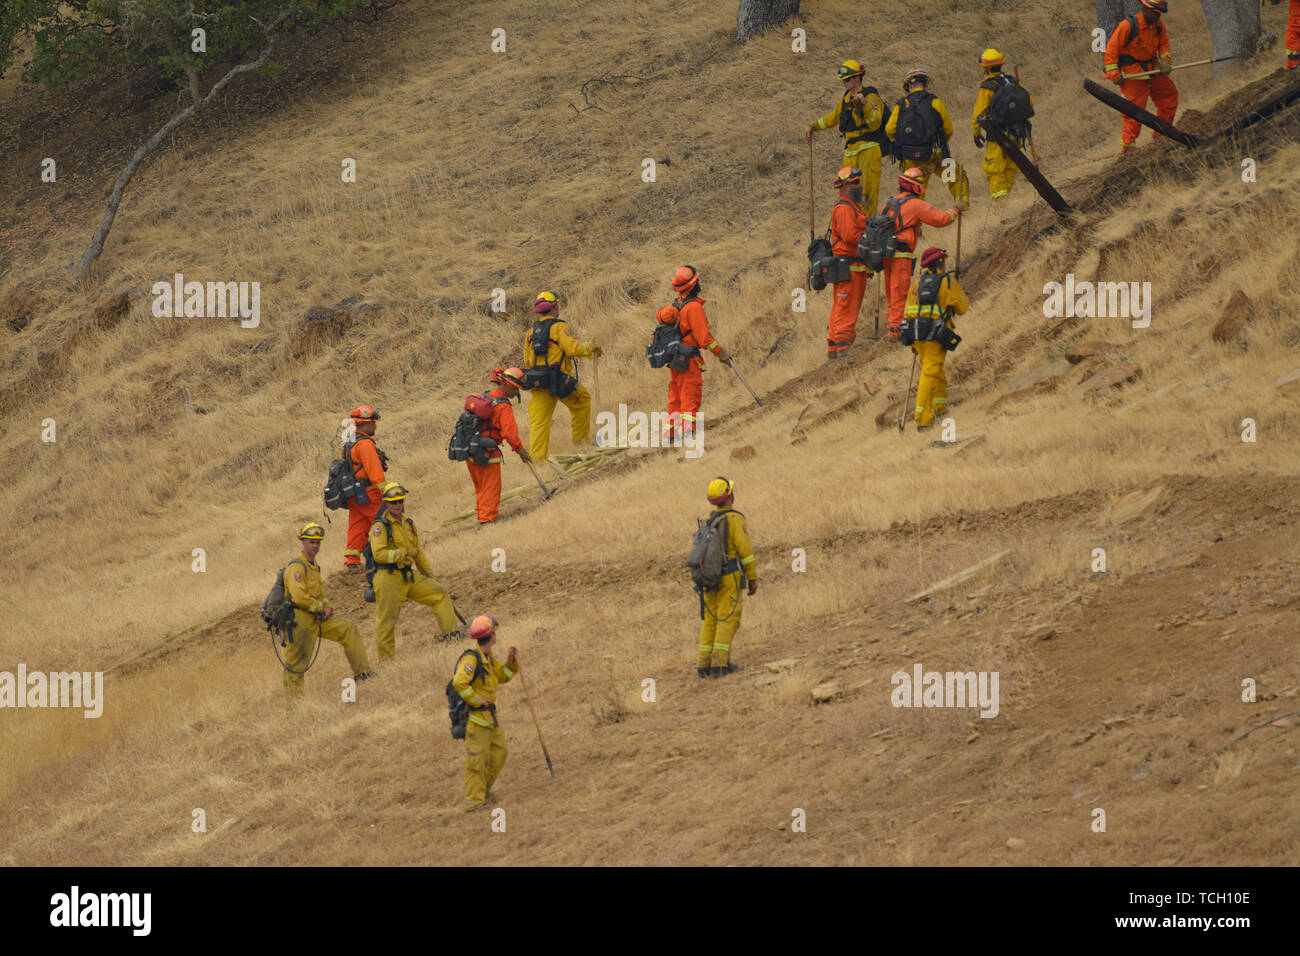 Cal fire fire fighters line up to climb a grassland hill side in lake berryessa, california, usa. - Stock Image